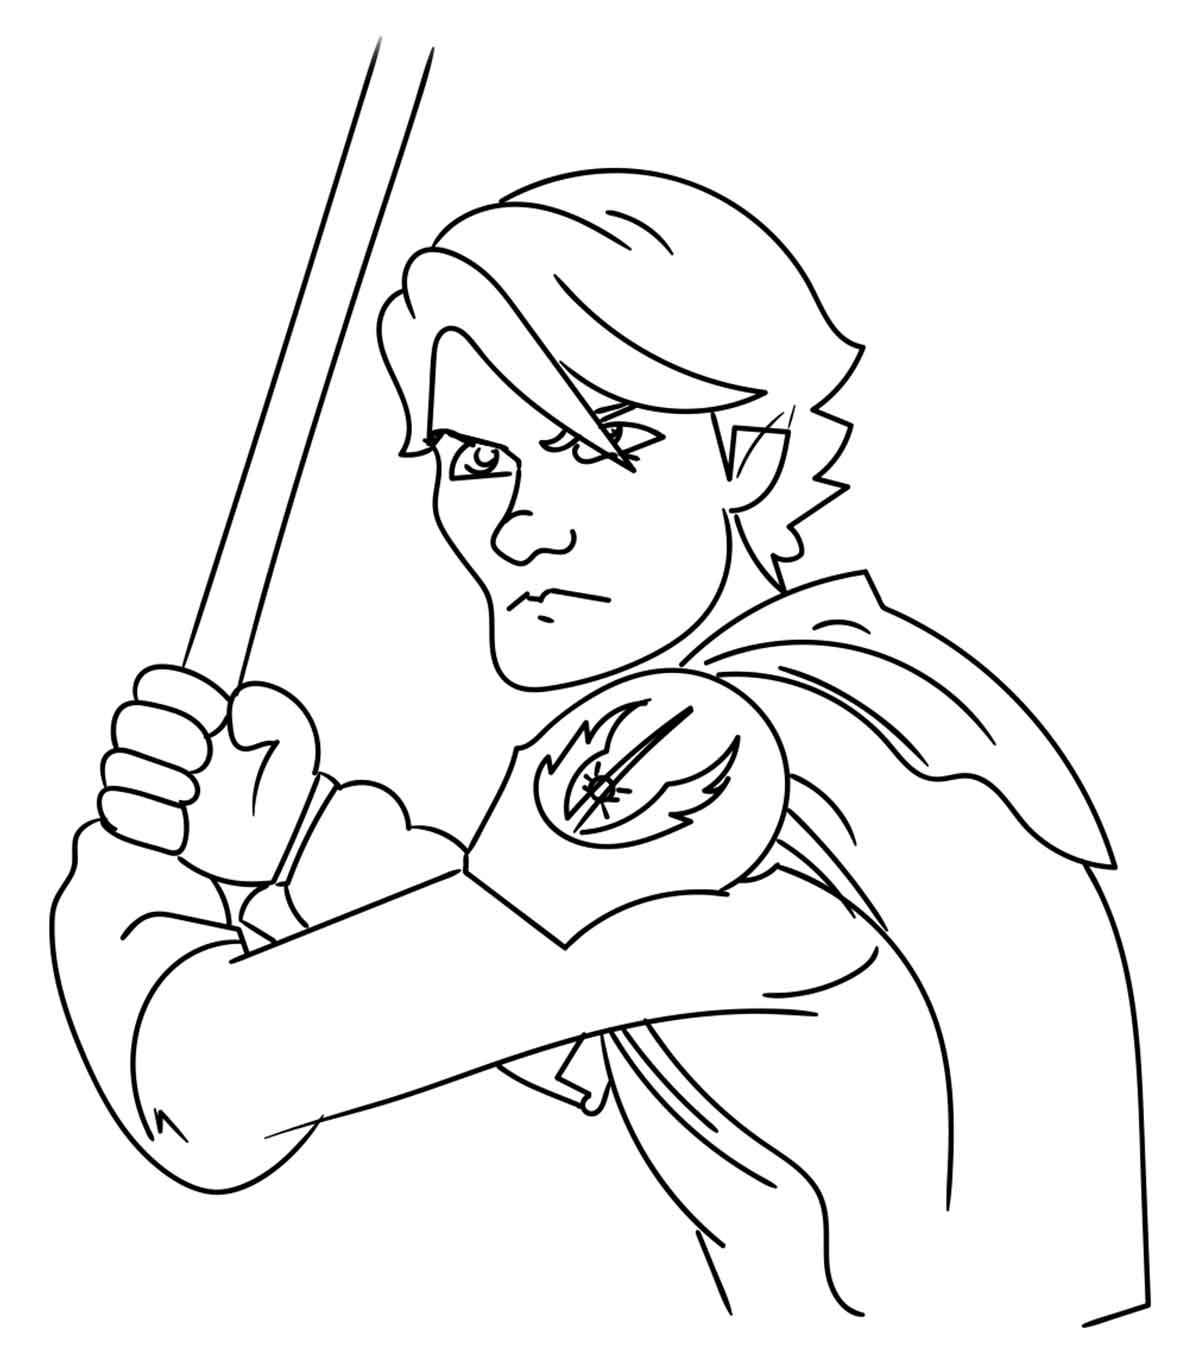 clone wars coloring pages | 1350x1200